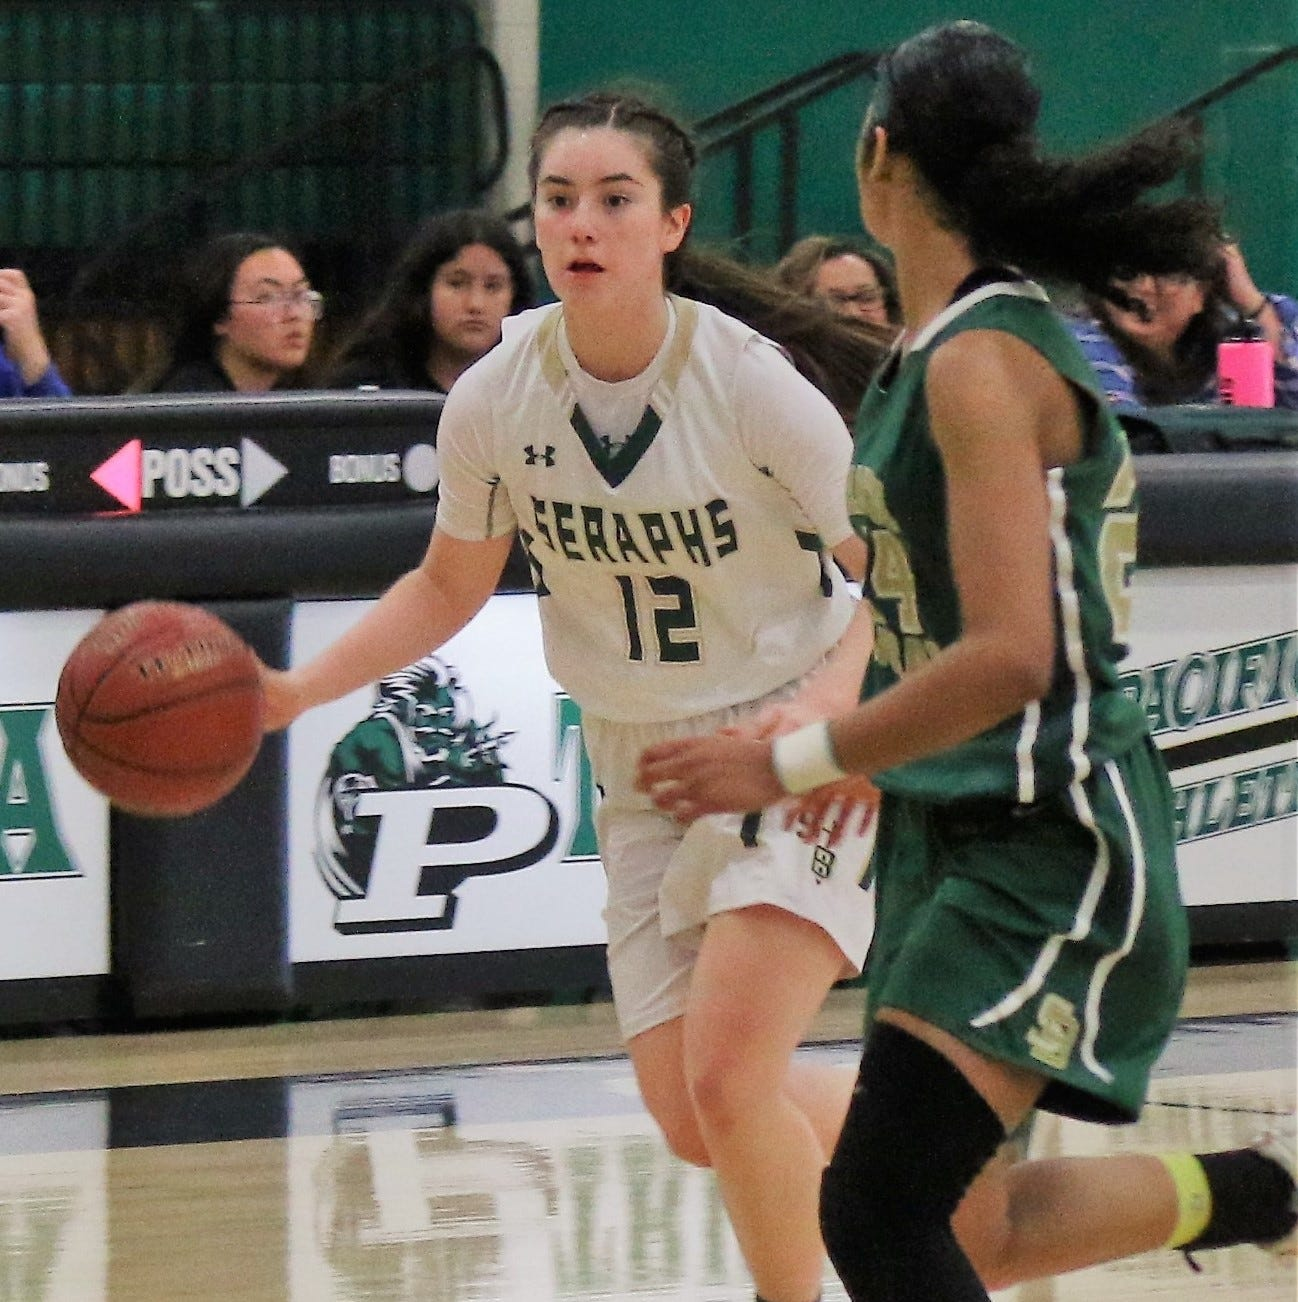 Top-seeded St. Bonaventure headed to CIF-SS Division 3A girls basketball semifinals